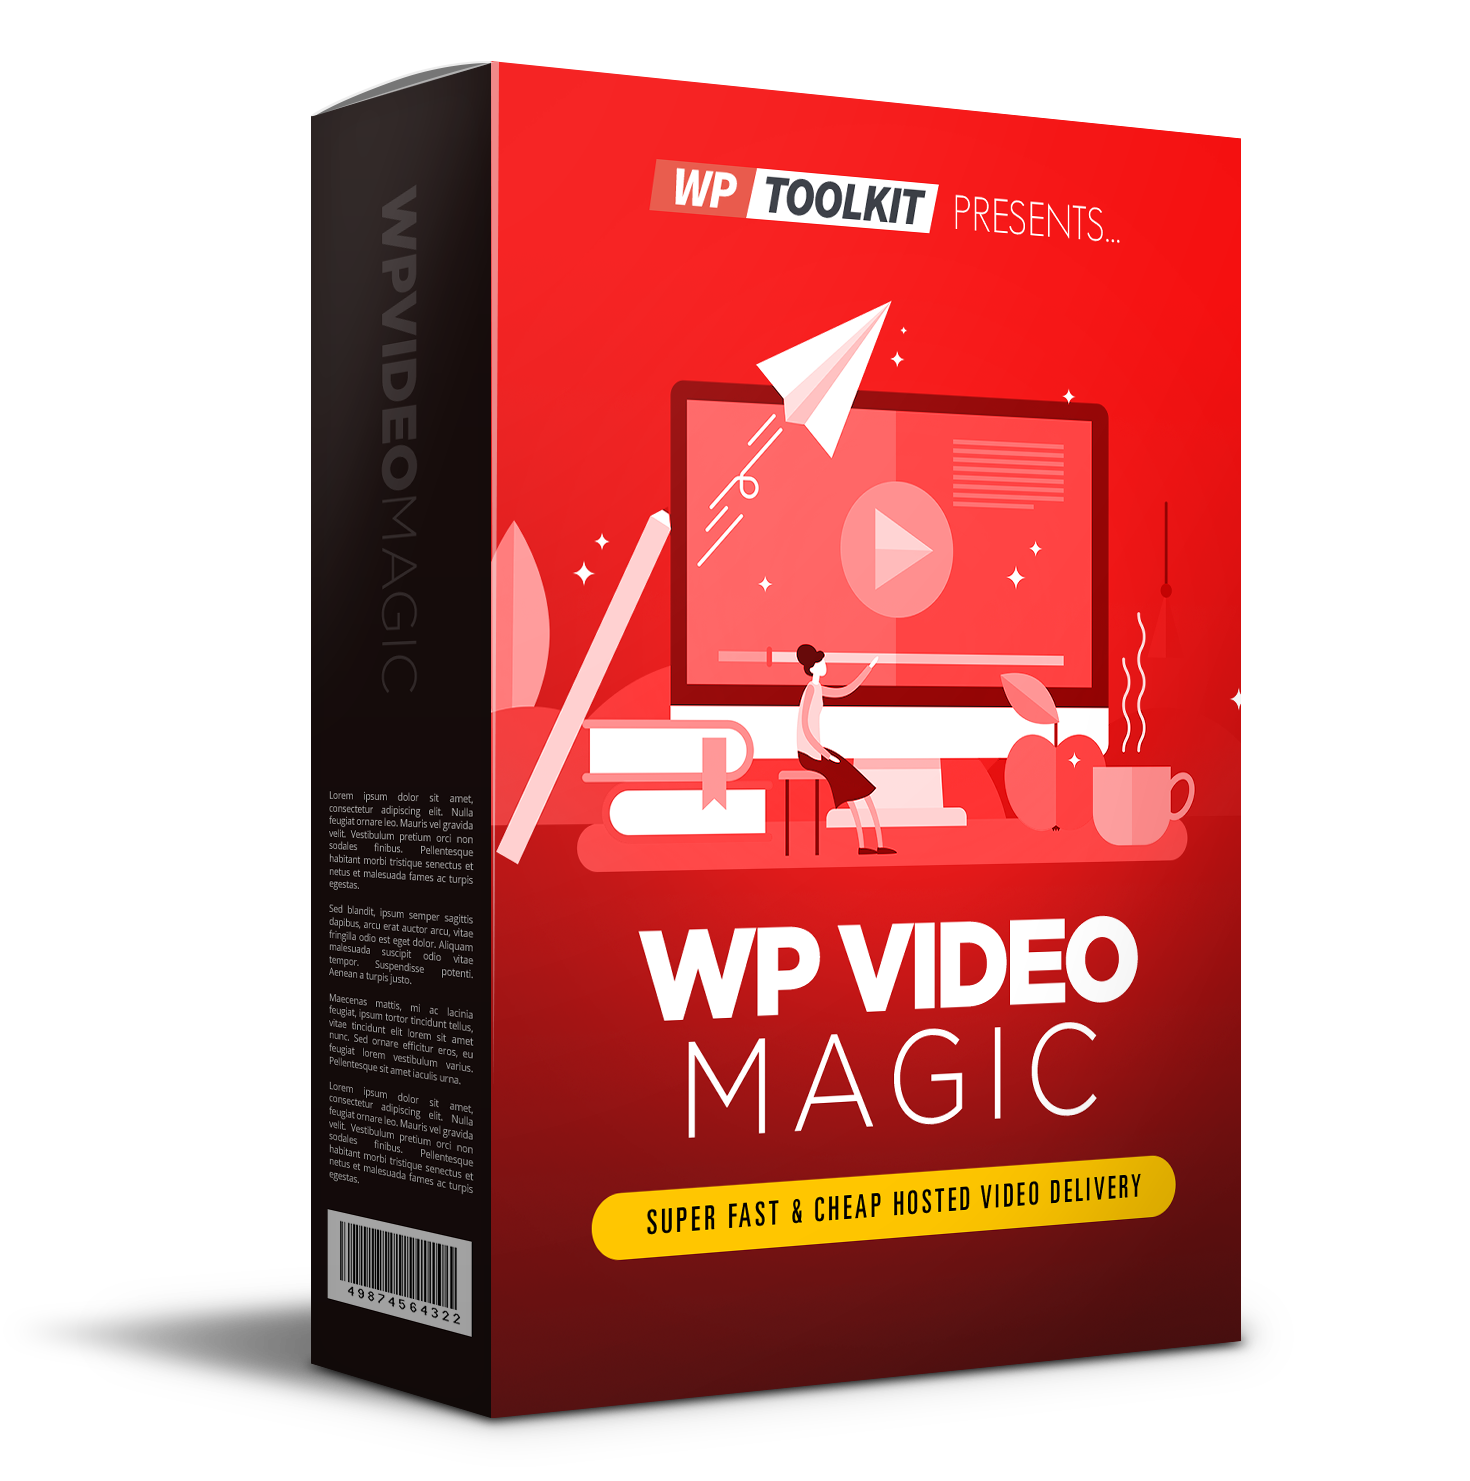 WP Toolkit Video Magic Review